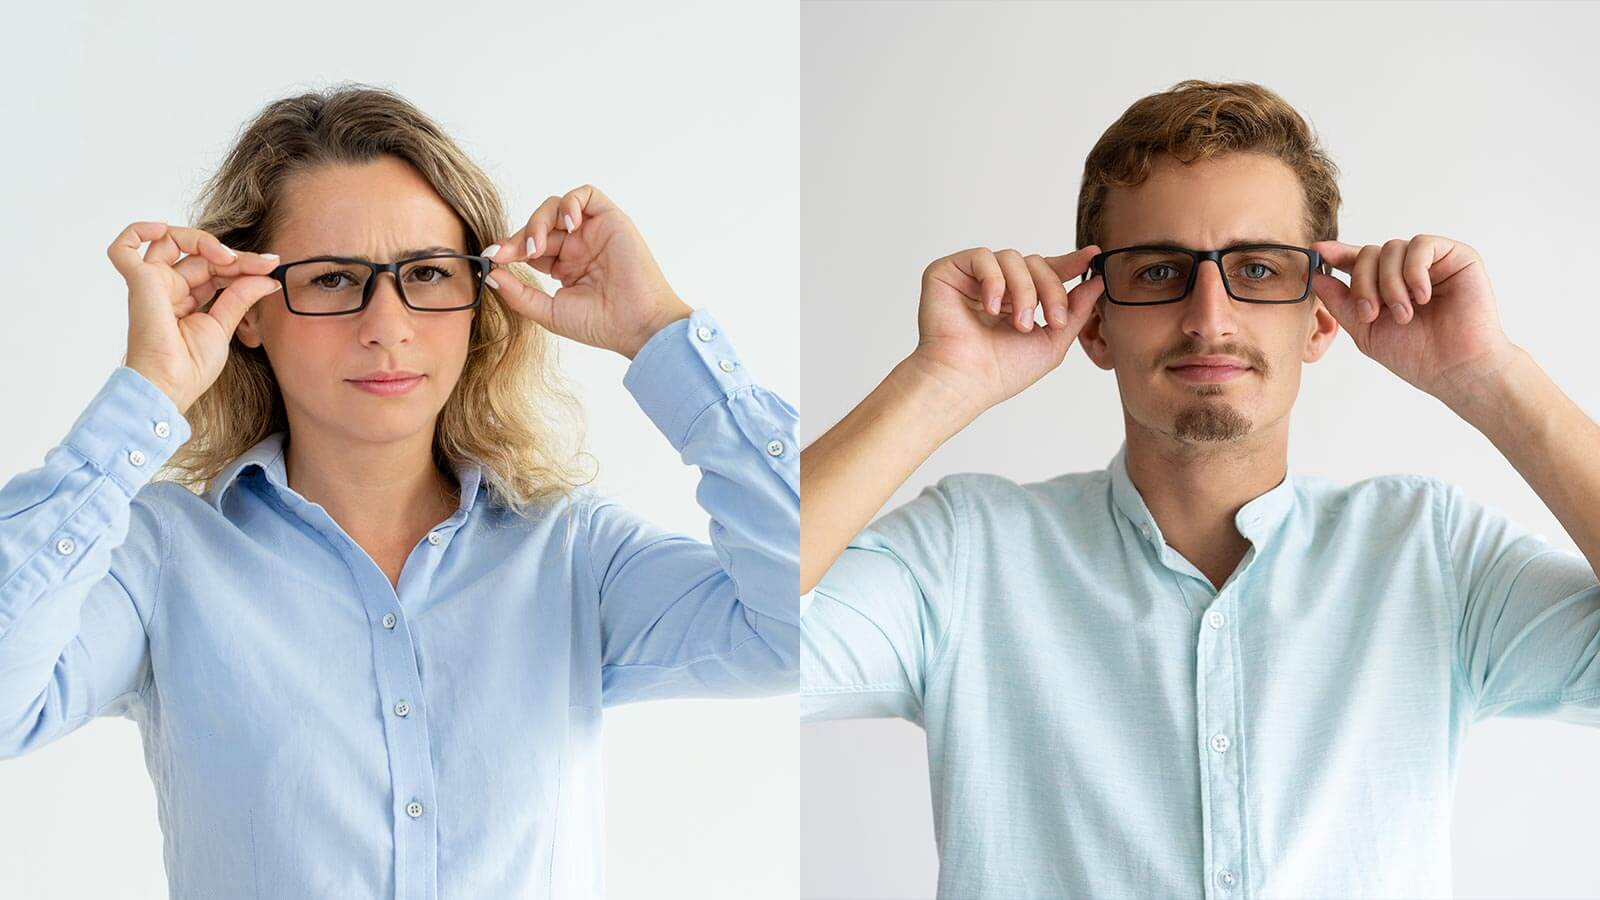 Does adjusting to new glasses make your life tough?